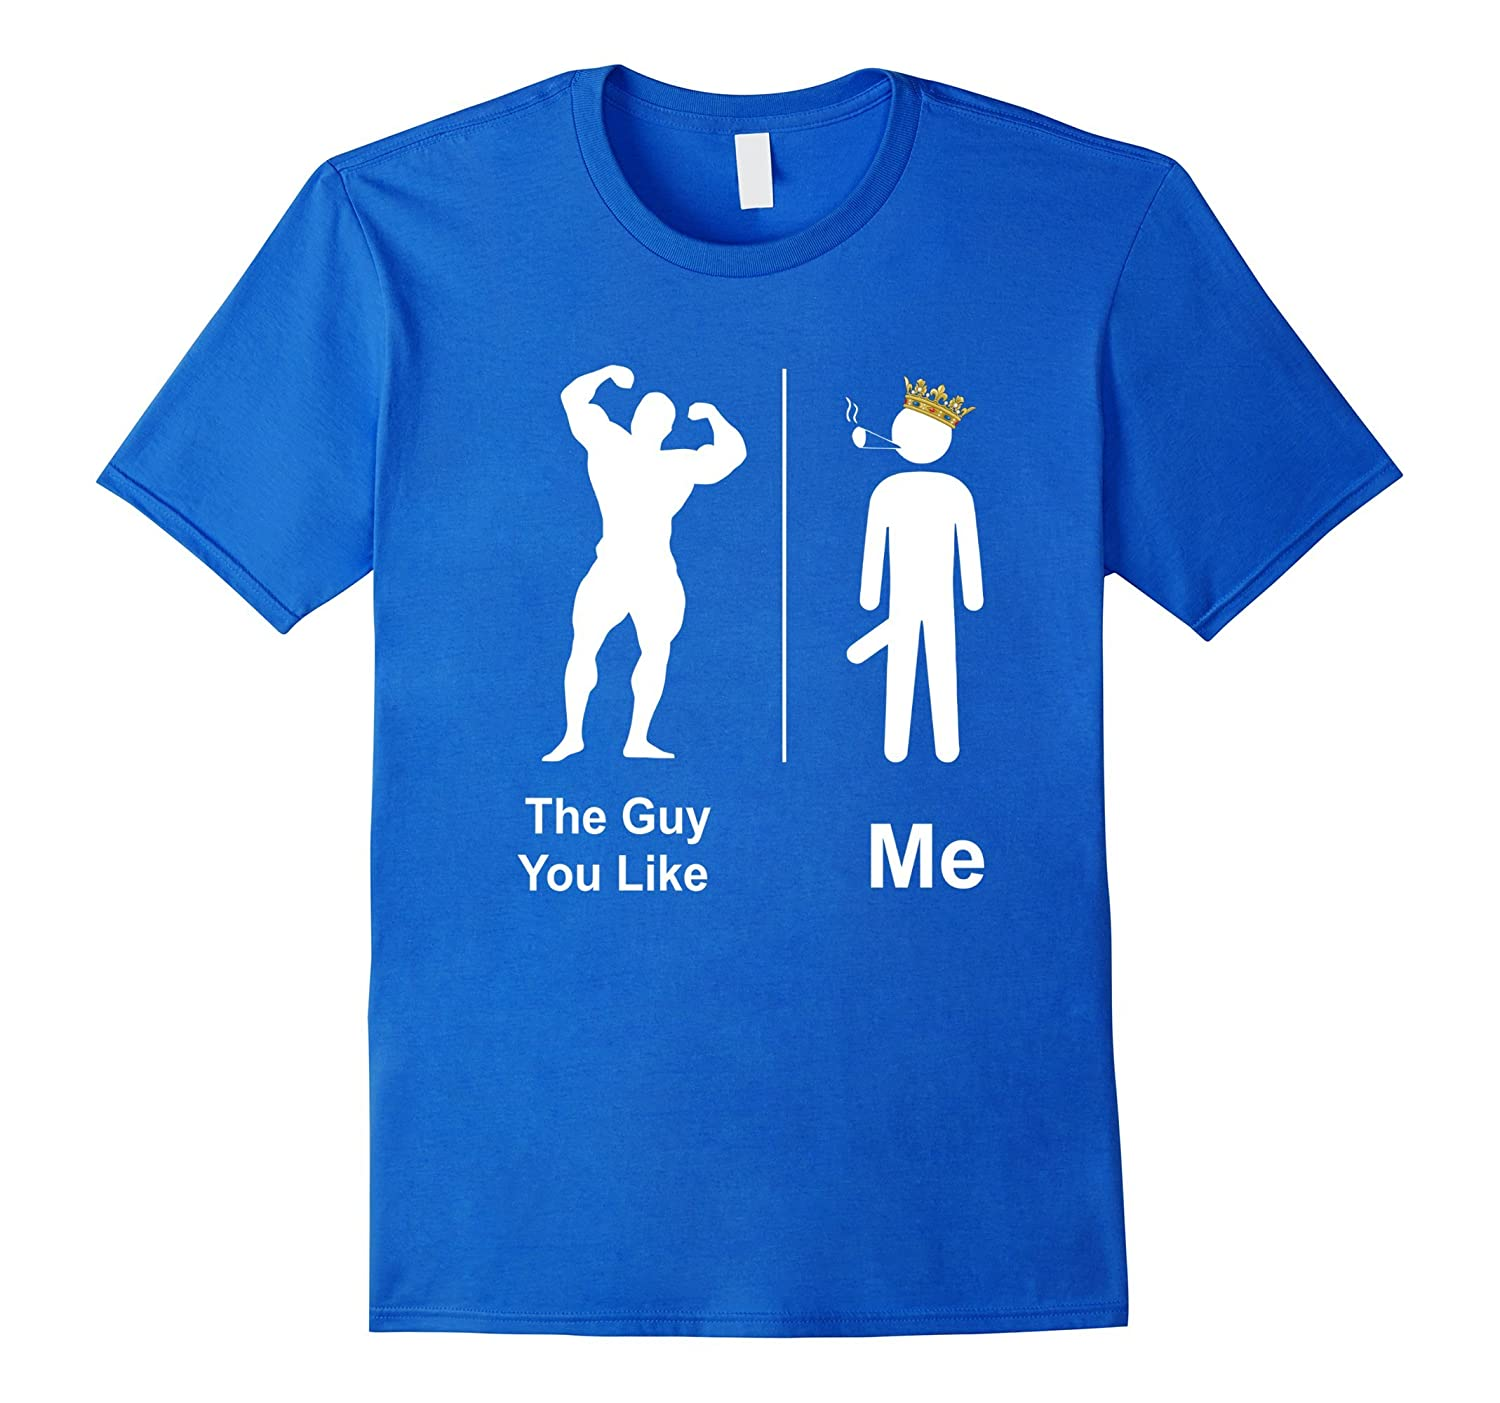 c6933c9e The Guy You Like Vs Me Funny Mens T-shirt Humorous Novelty-BN ...